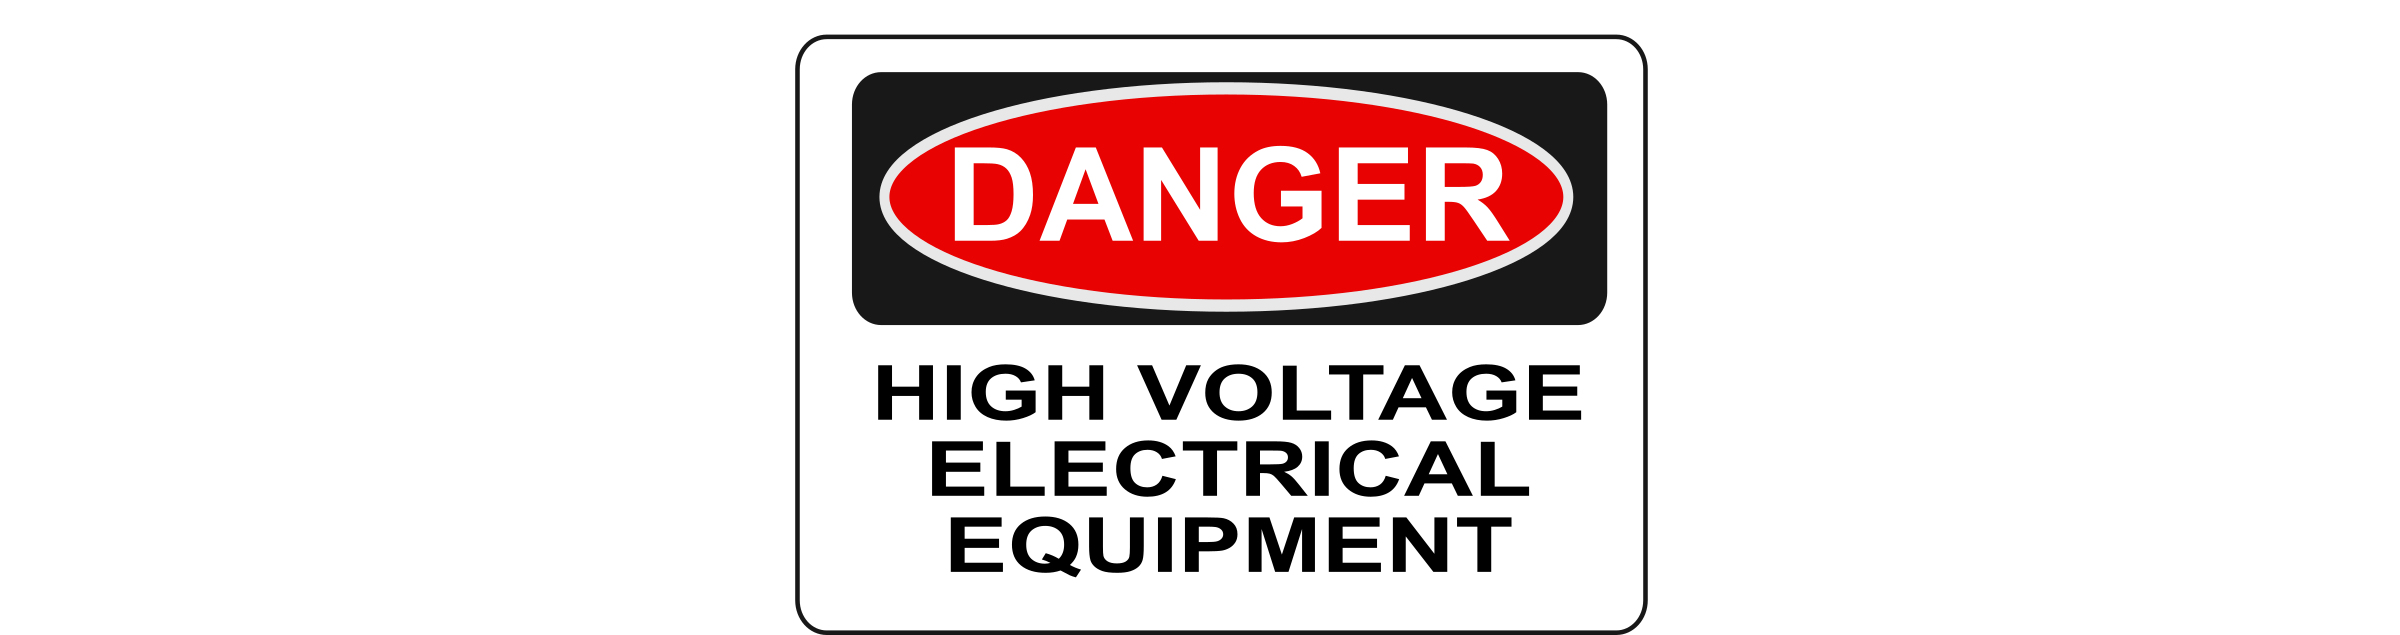 Electric clipart equipment. Danger high voltage electrical